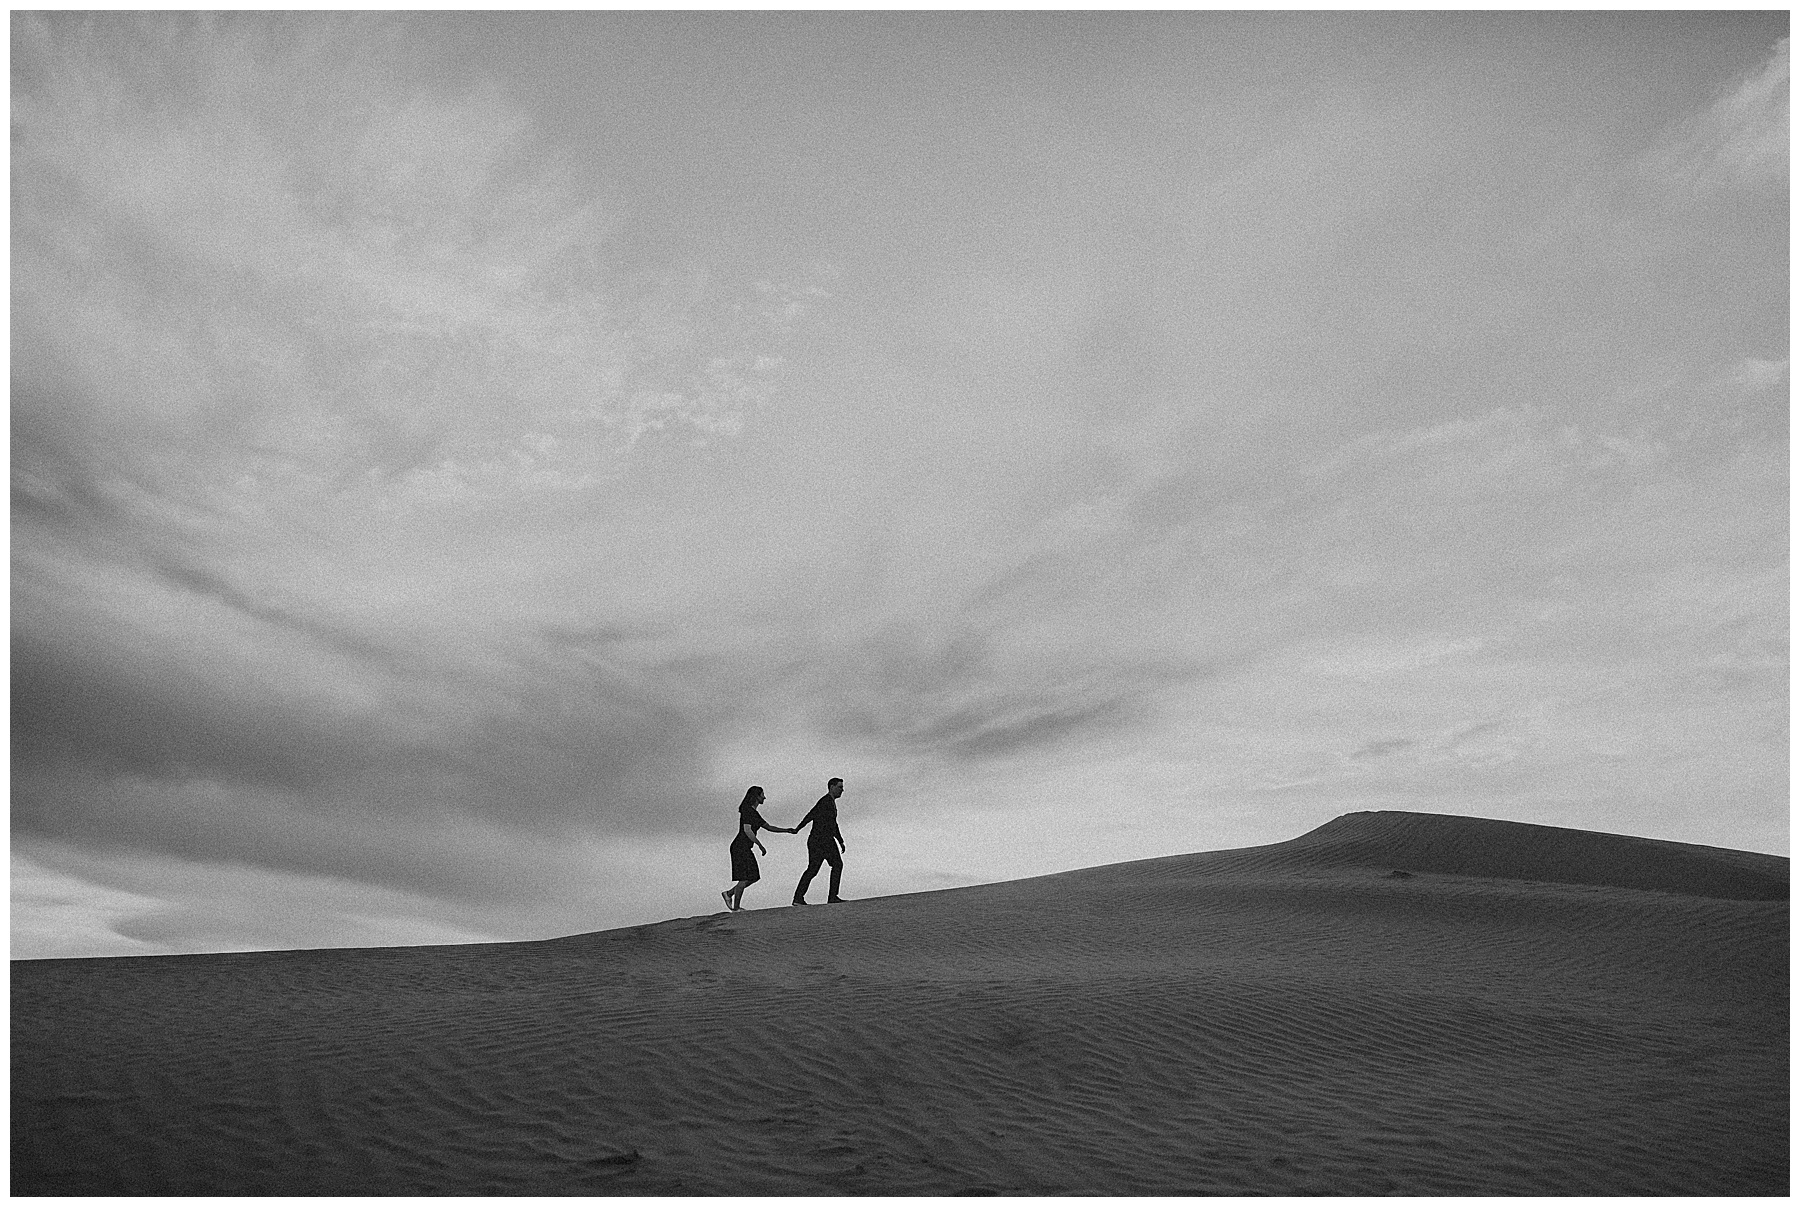 Silhouette black and white couple walking across sand dunes in Utah